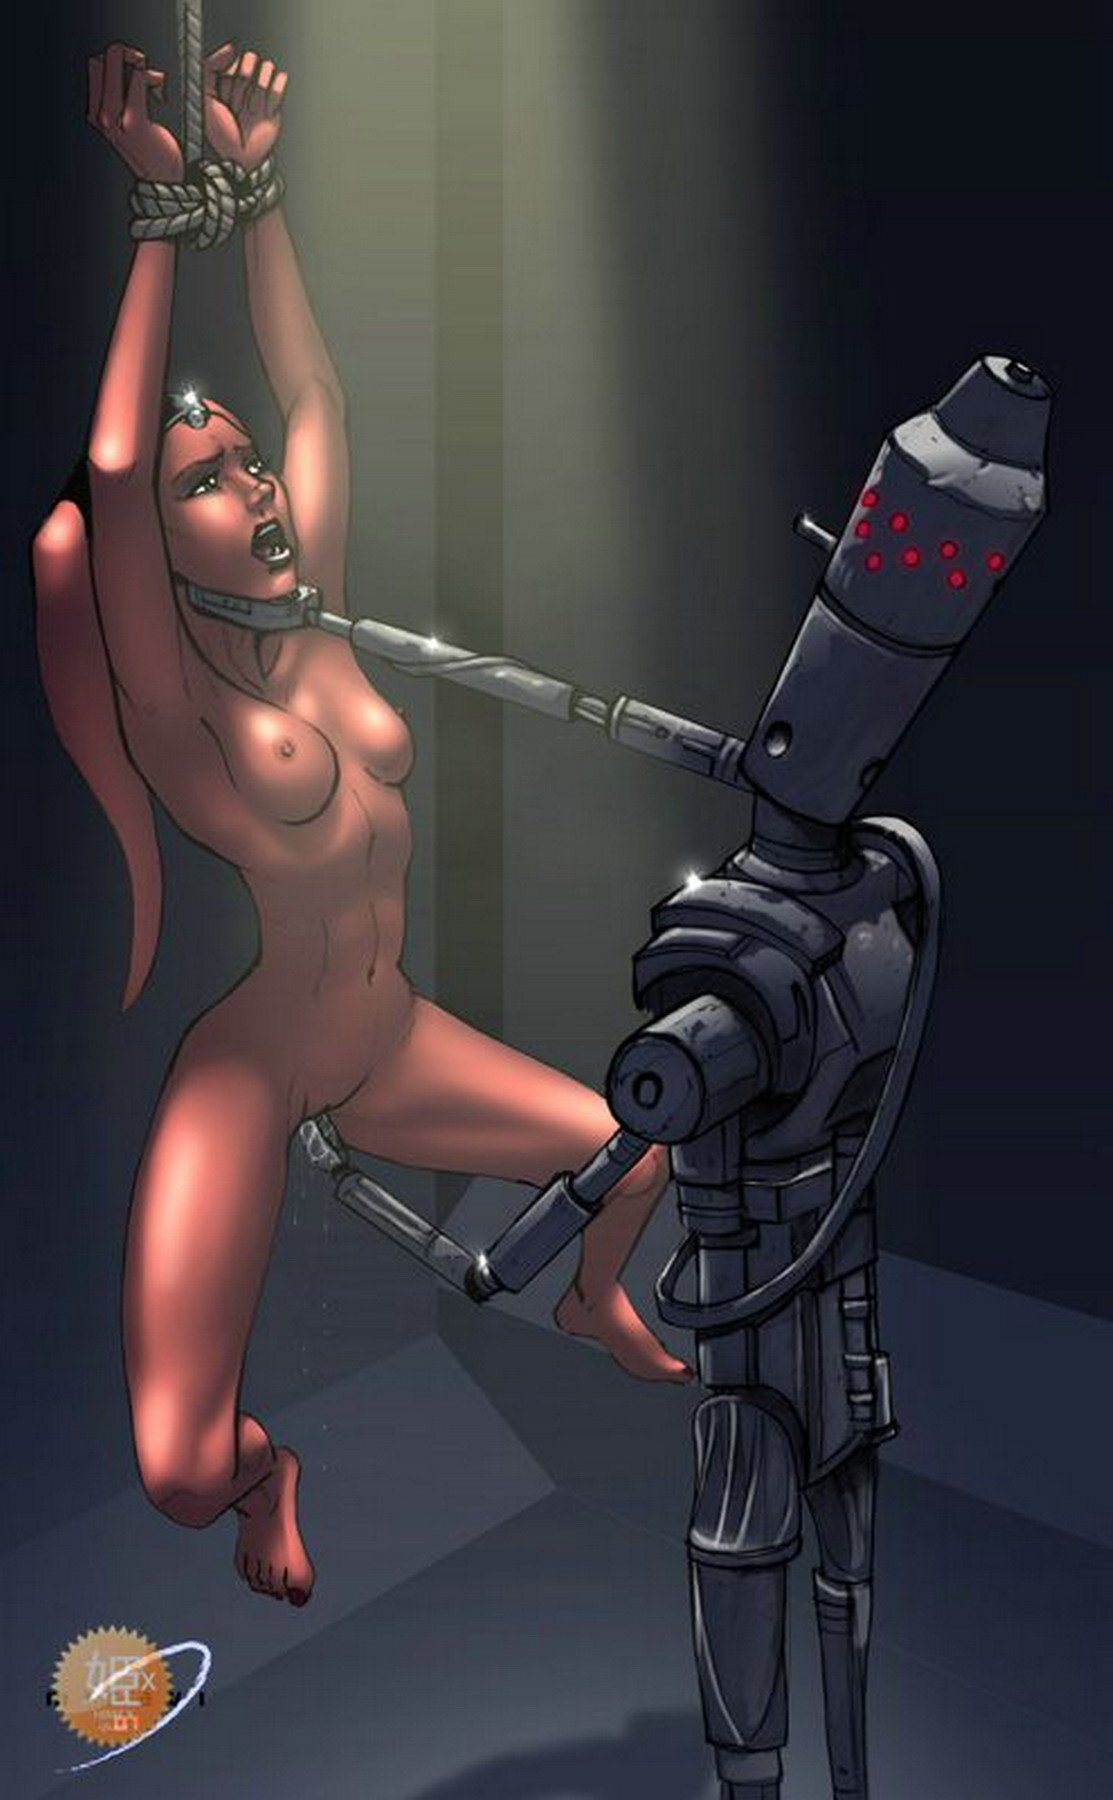 Cartoon star wars grils nude fucked pictures